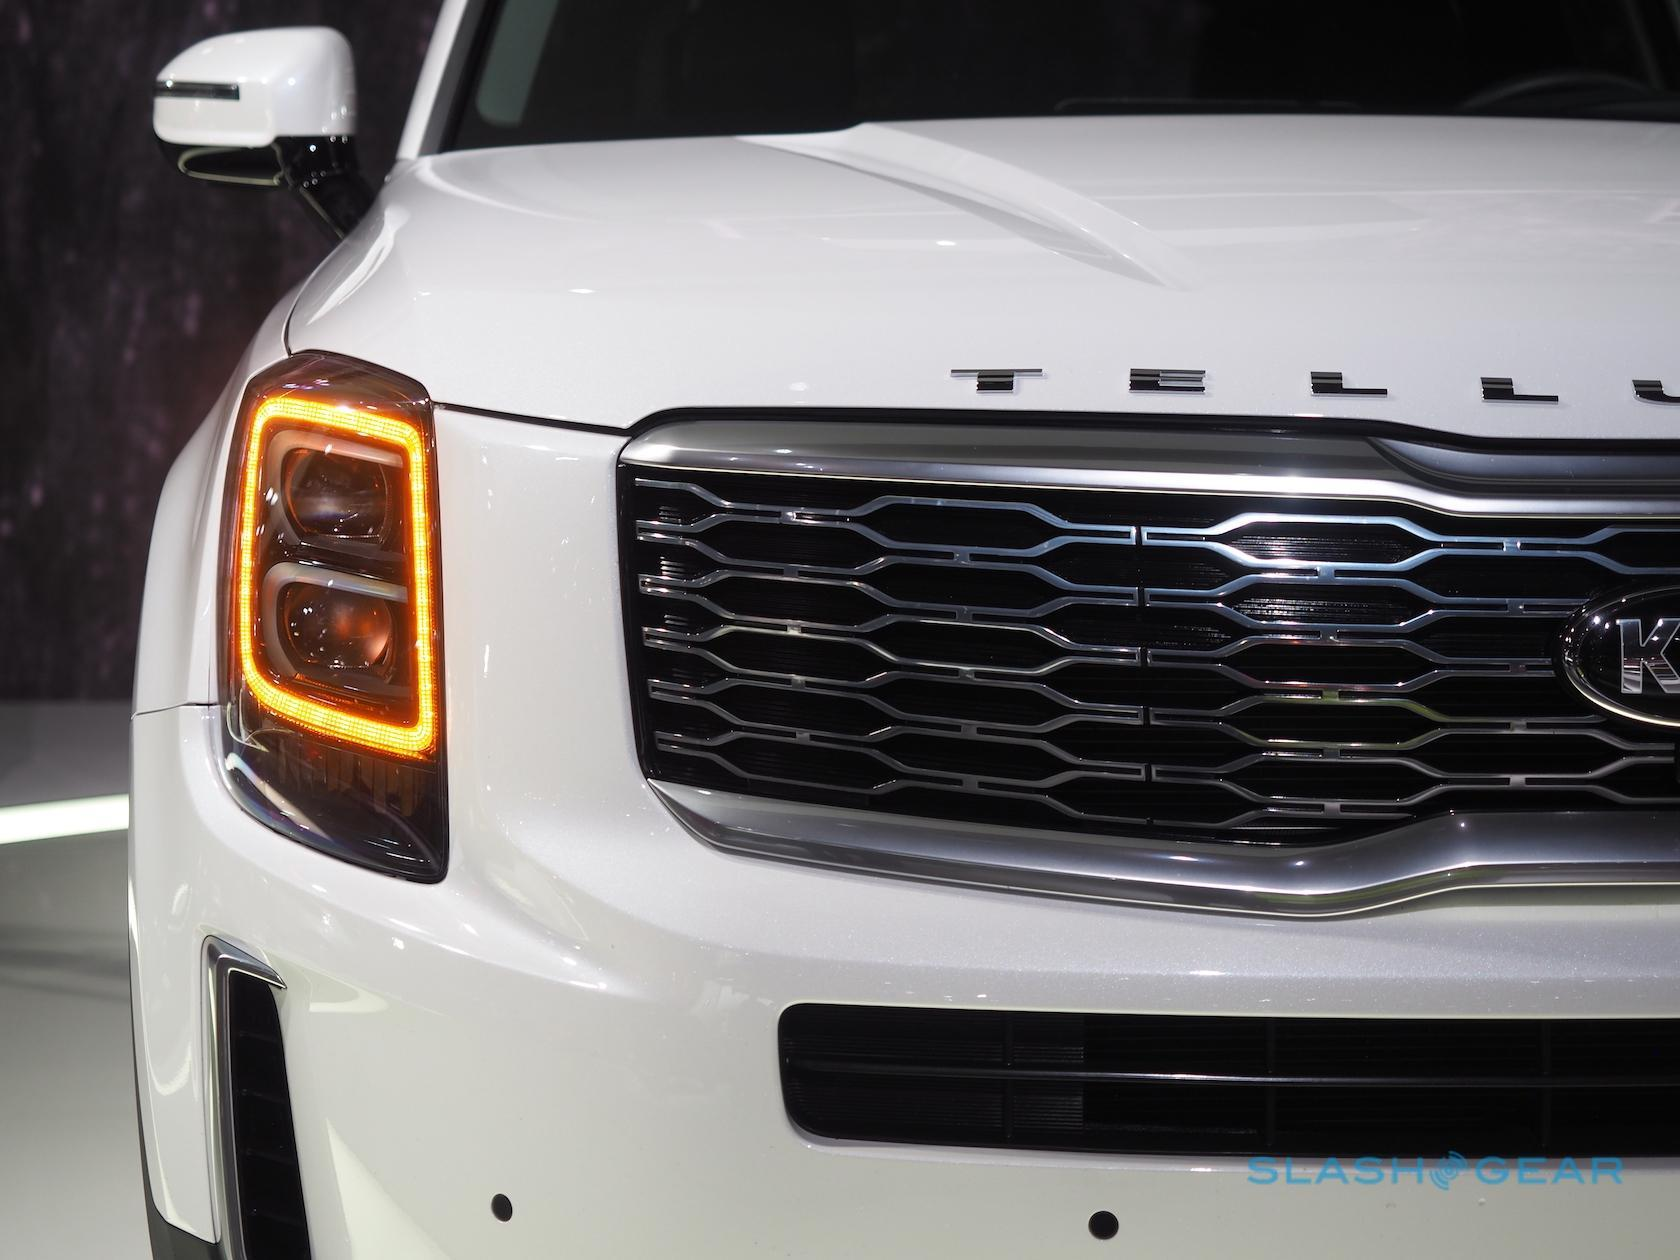 2020 Kia Telluride first look: Family SUV meets premium